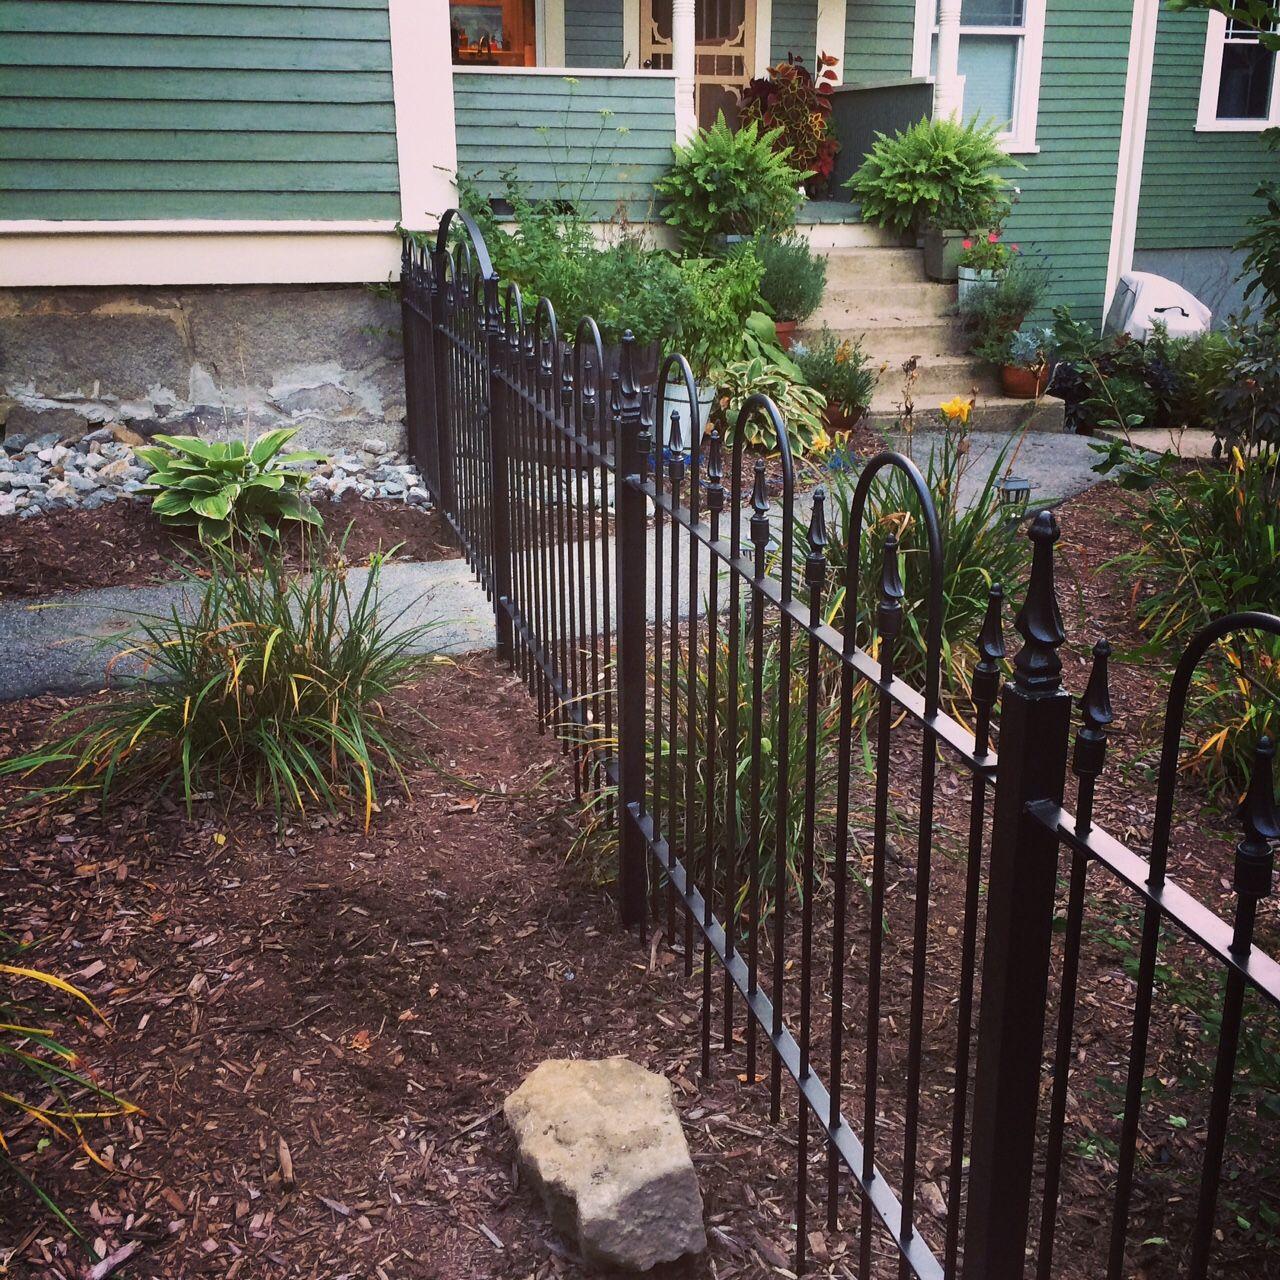 Wrought Iron Fence To Enclose Yards 3 Foot Tall Wrought Iron